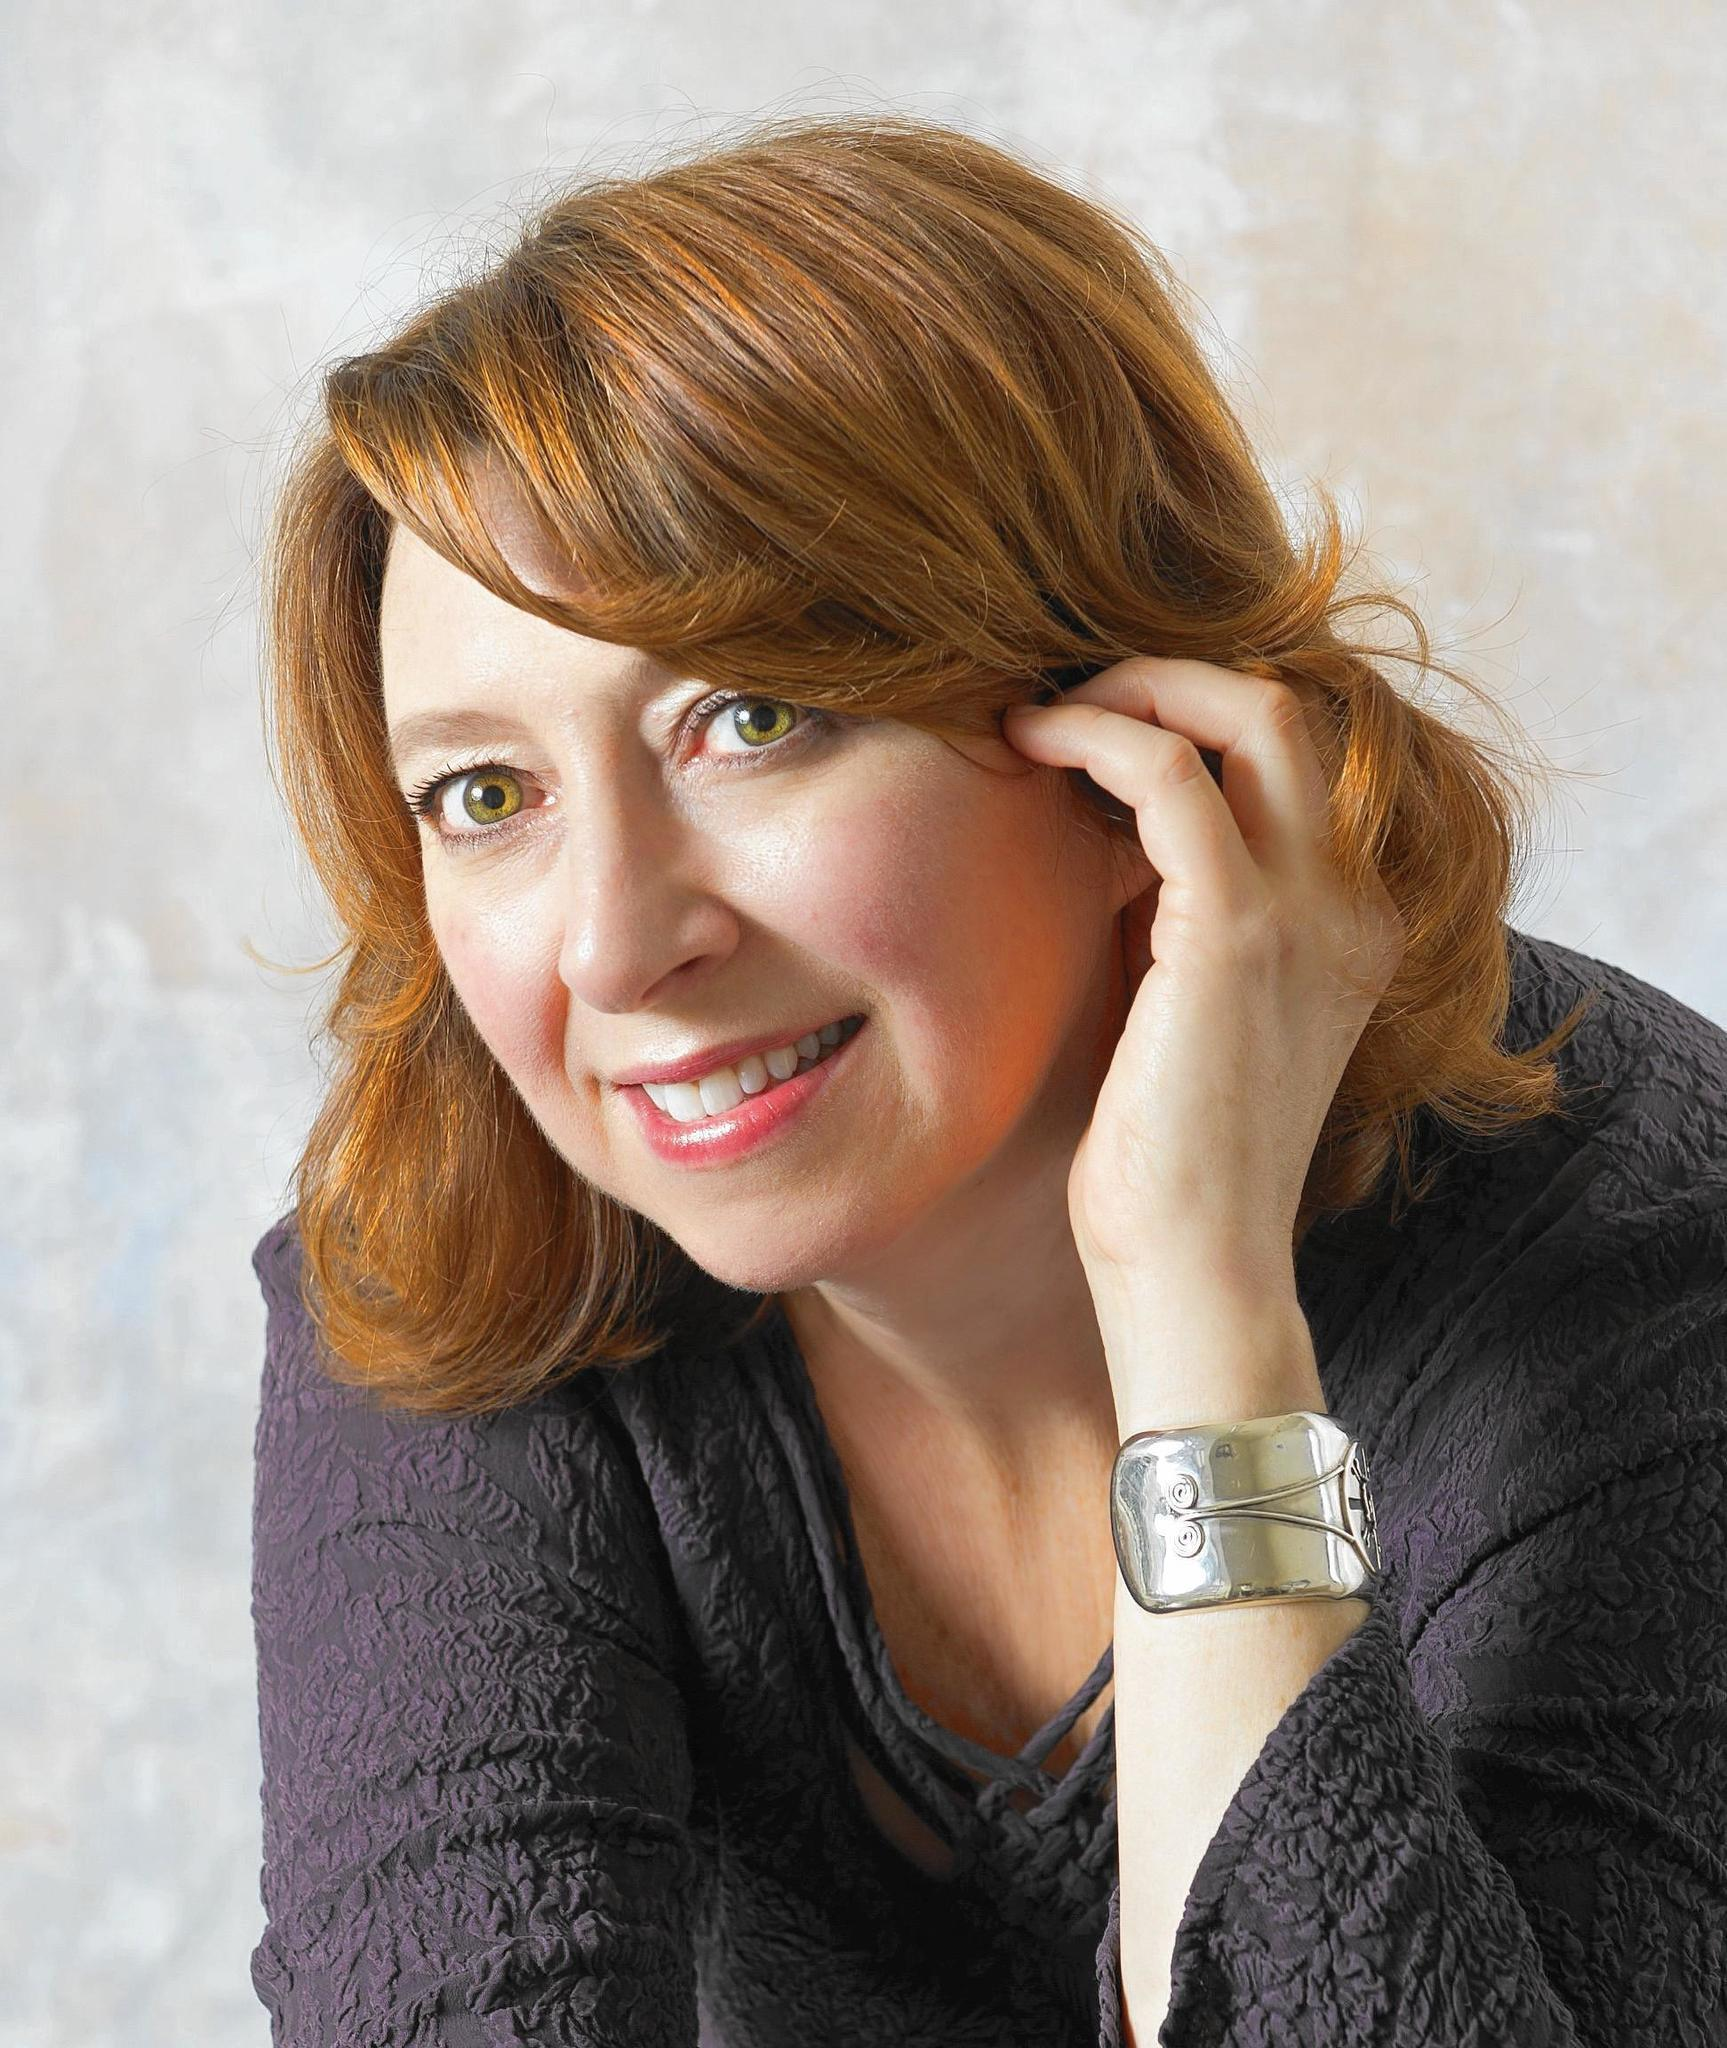 Shaman Visits West Hartford During Book Tour - Courant ...